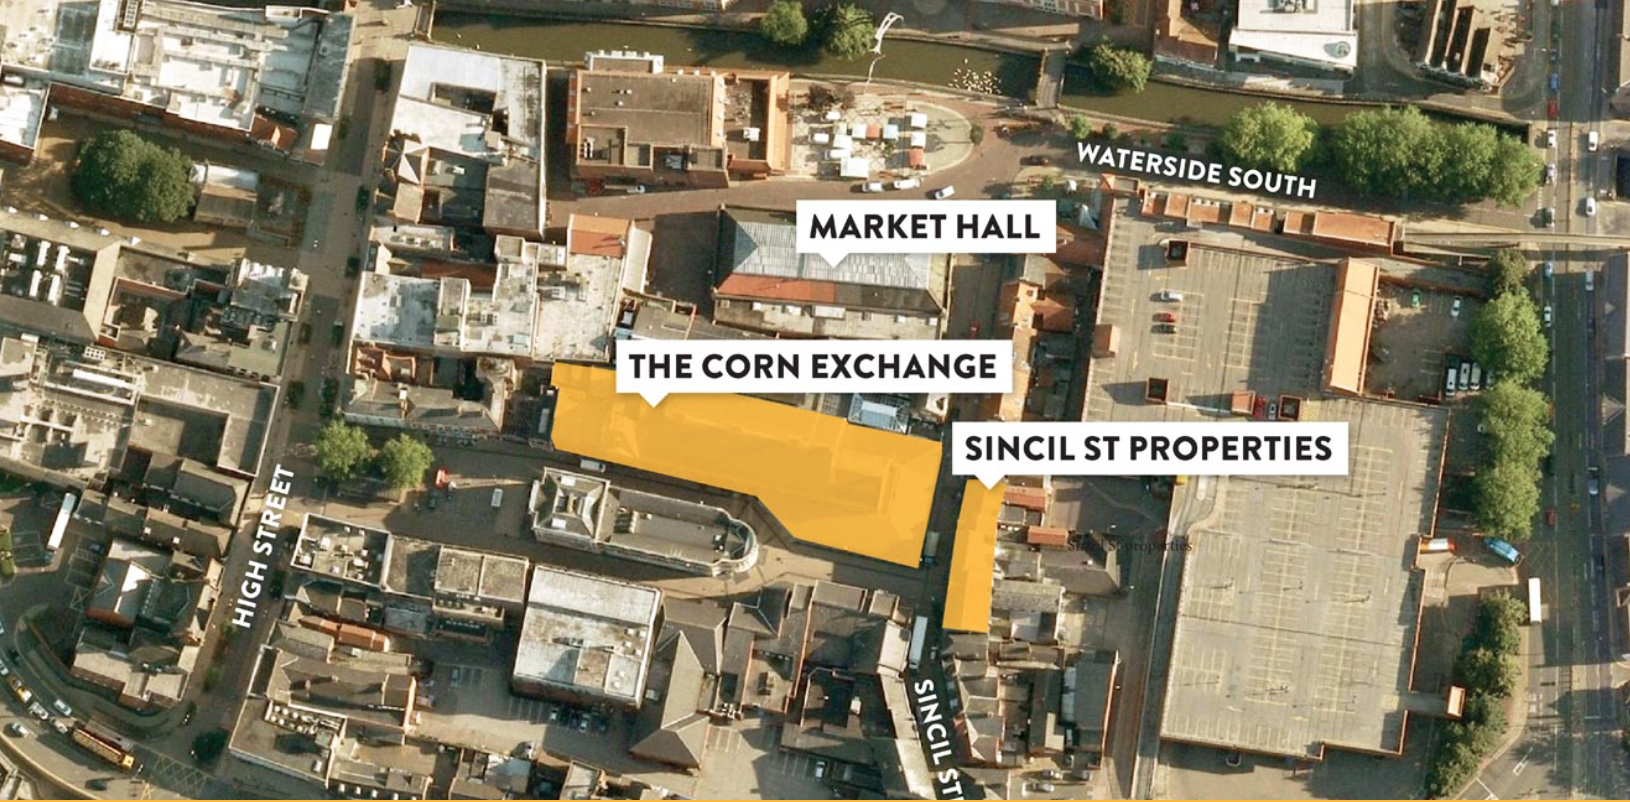 The scheme is a major redevelopment including 30,000 m2 of new shops and restaurants